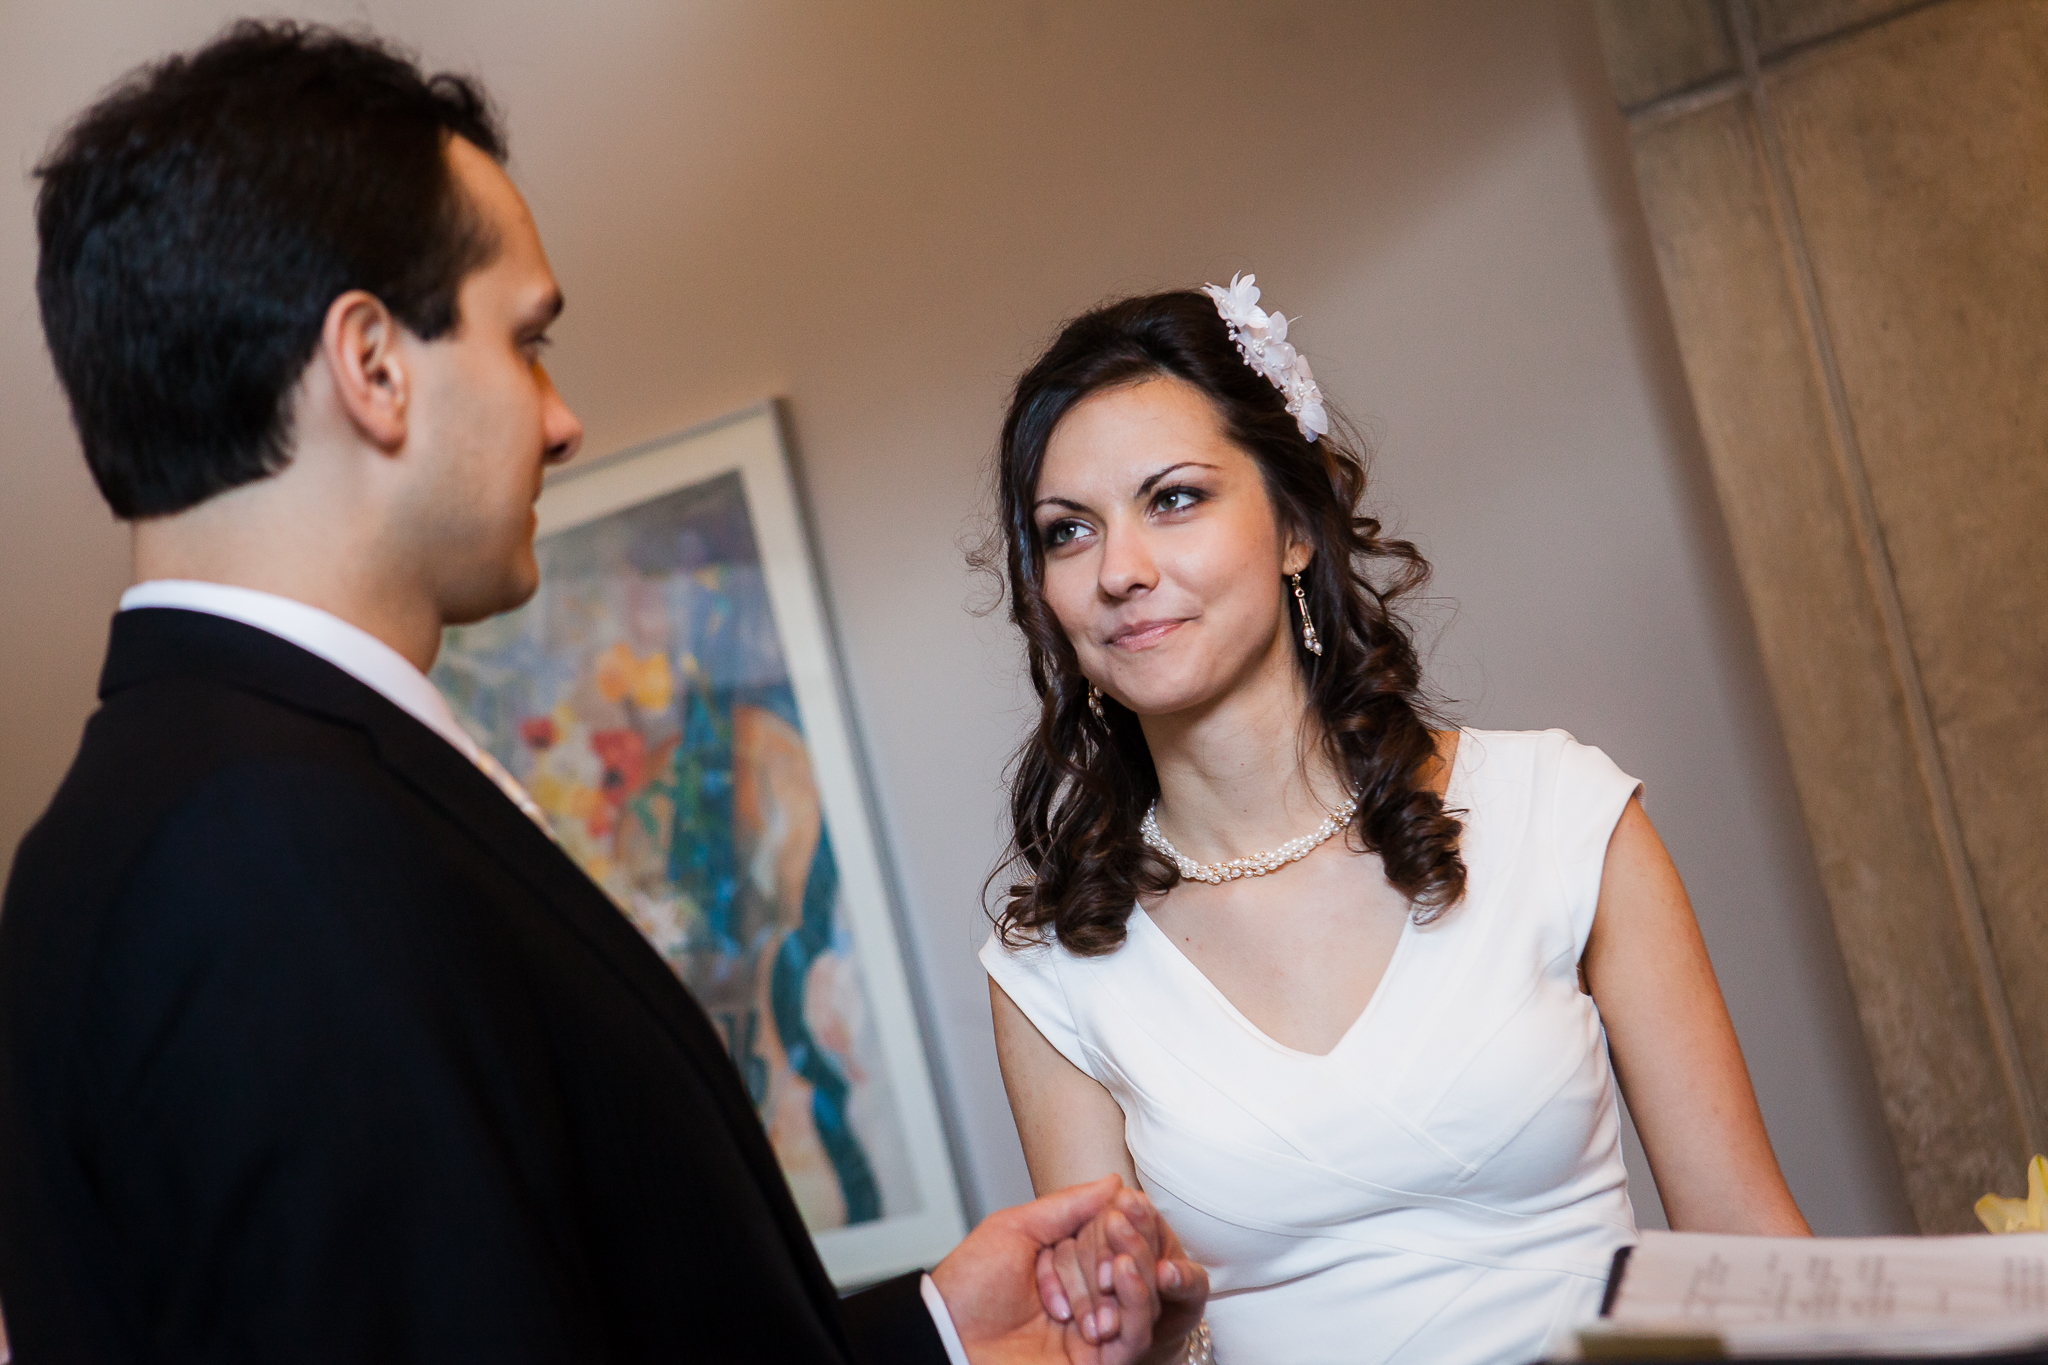 Toronto Wedding Photography - Zoya & Alexei -12.jpg